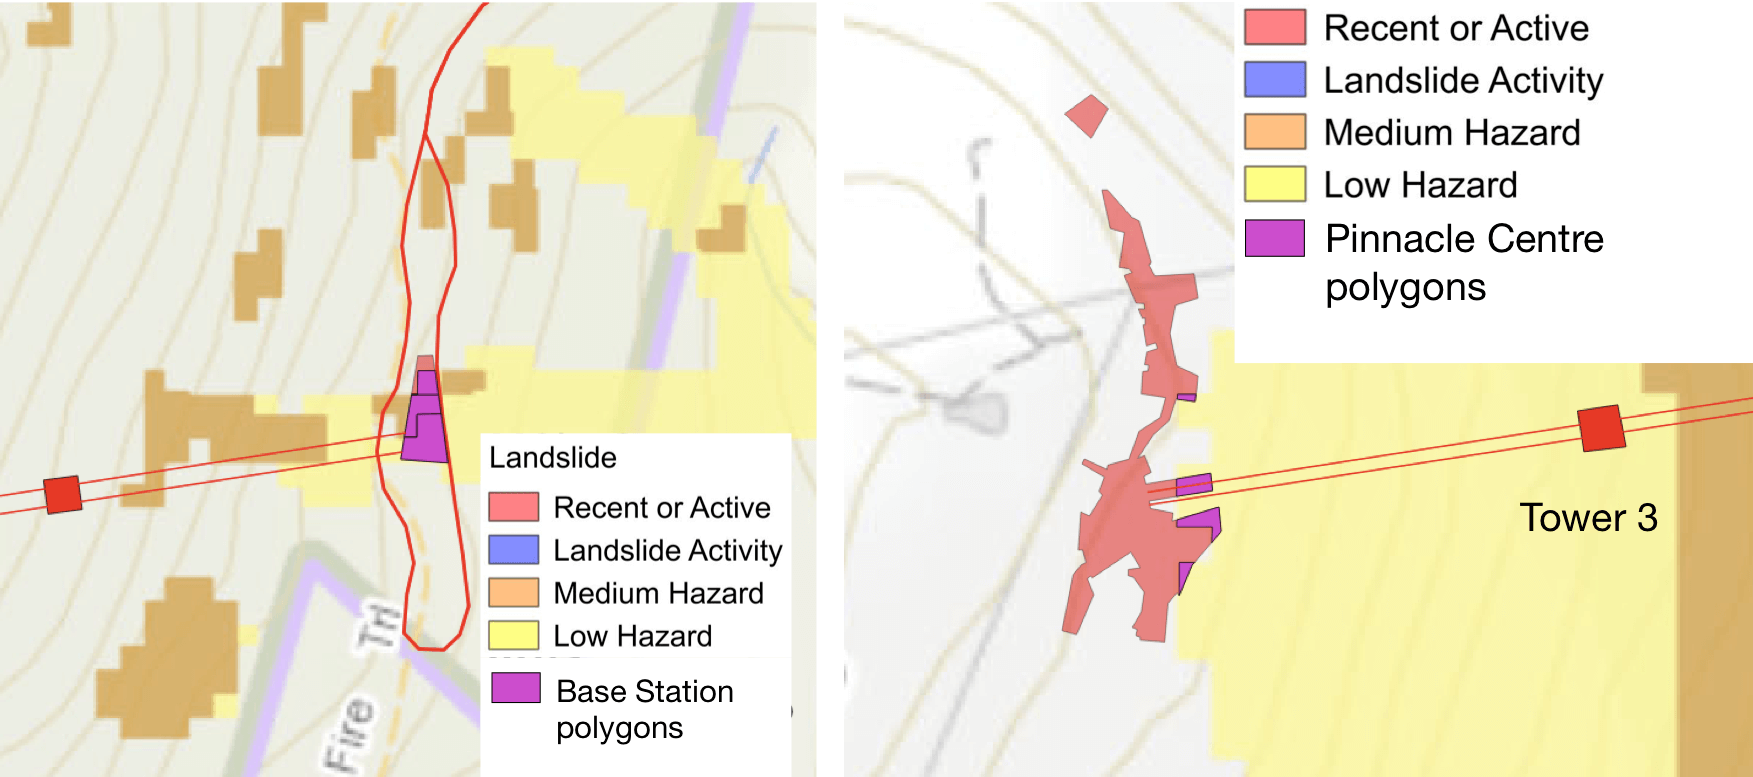 High precision overlays of MWCC facilities over Mineral resources Tasmania landslide maps. Base Station (left) and Pinnacle Centre (right).